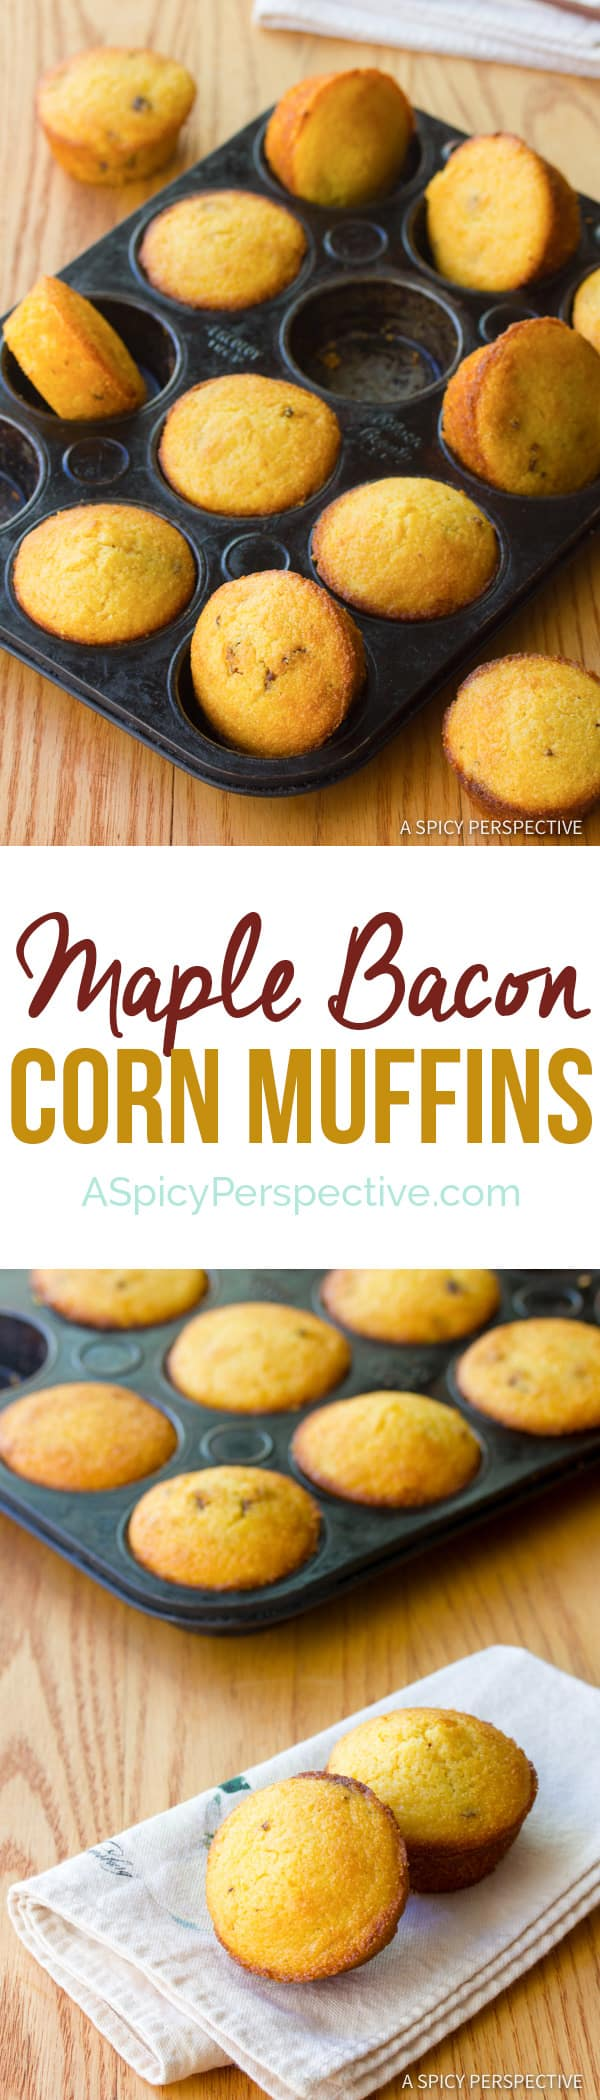 Maple Bacon Corn Muffins Recipe | ASpicyPerspective.com